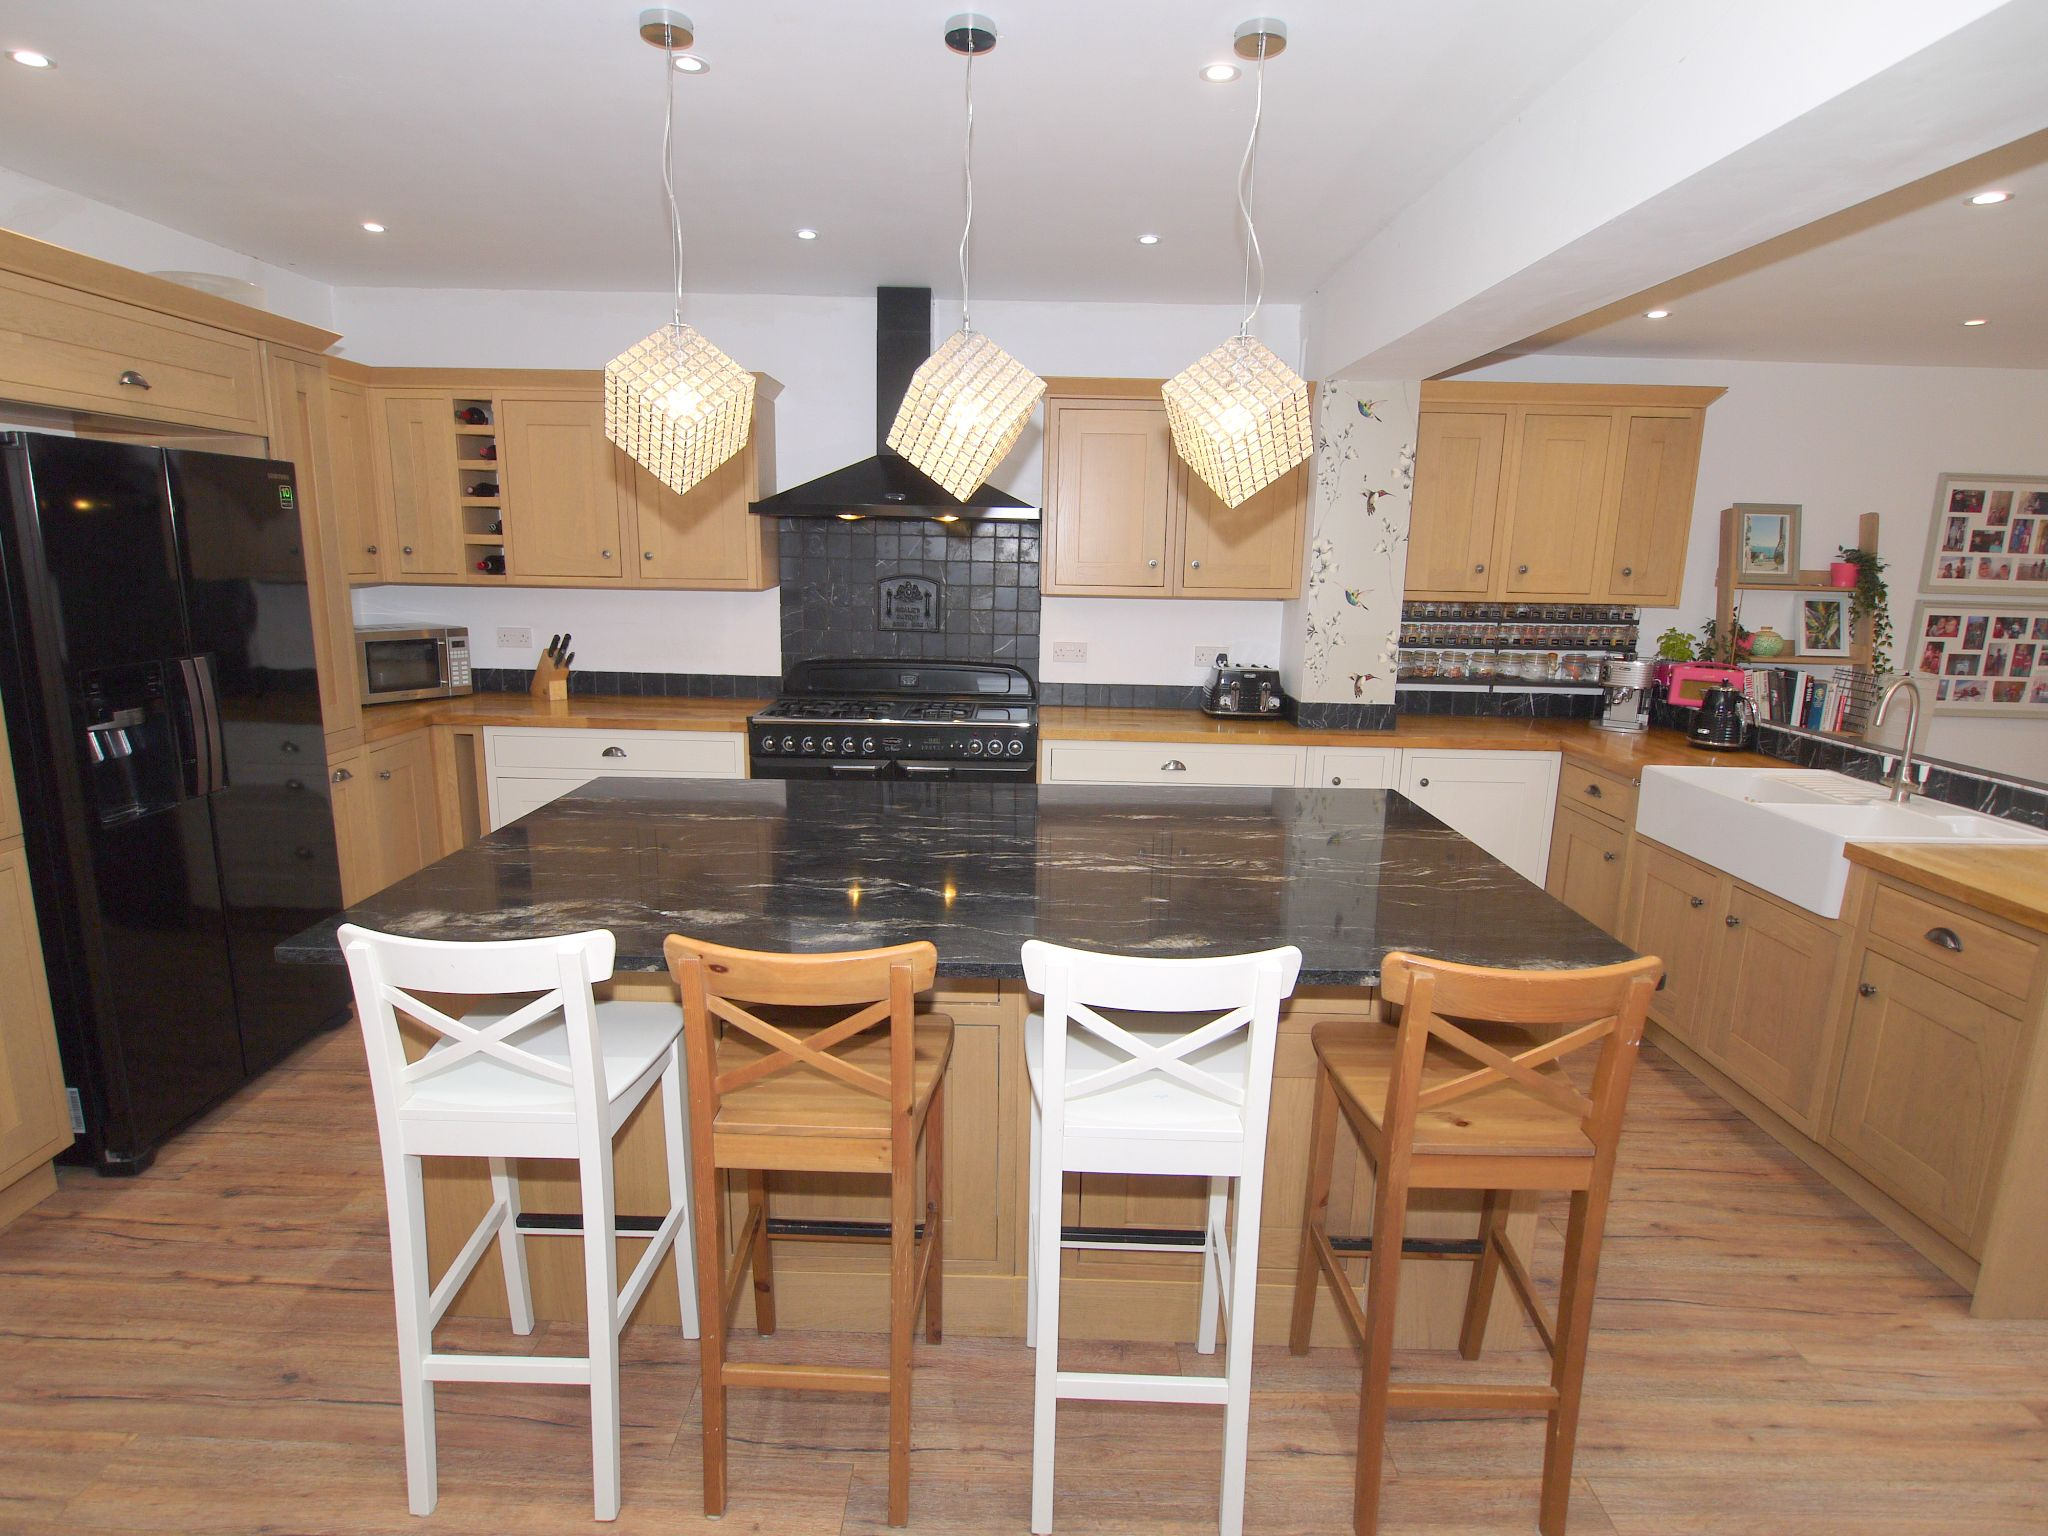 7 bedroom detached house For Sale in Sevenoaks - Photograph 2